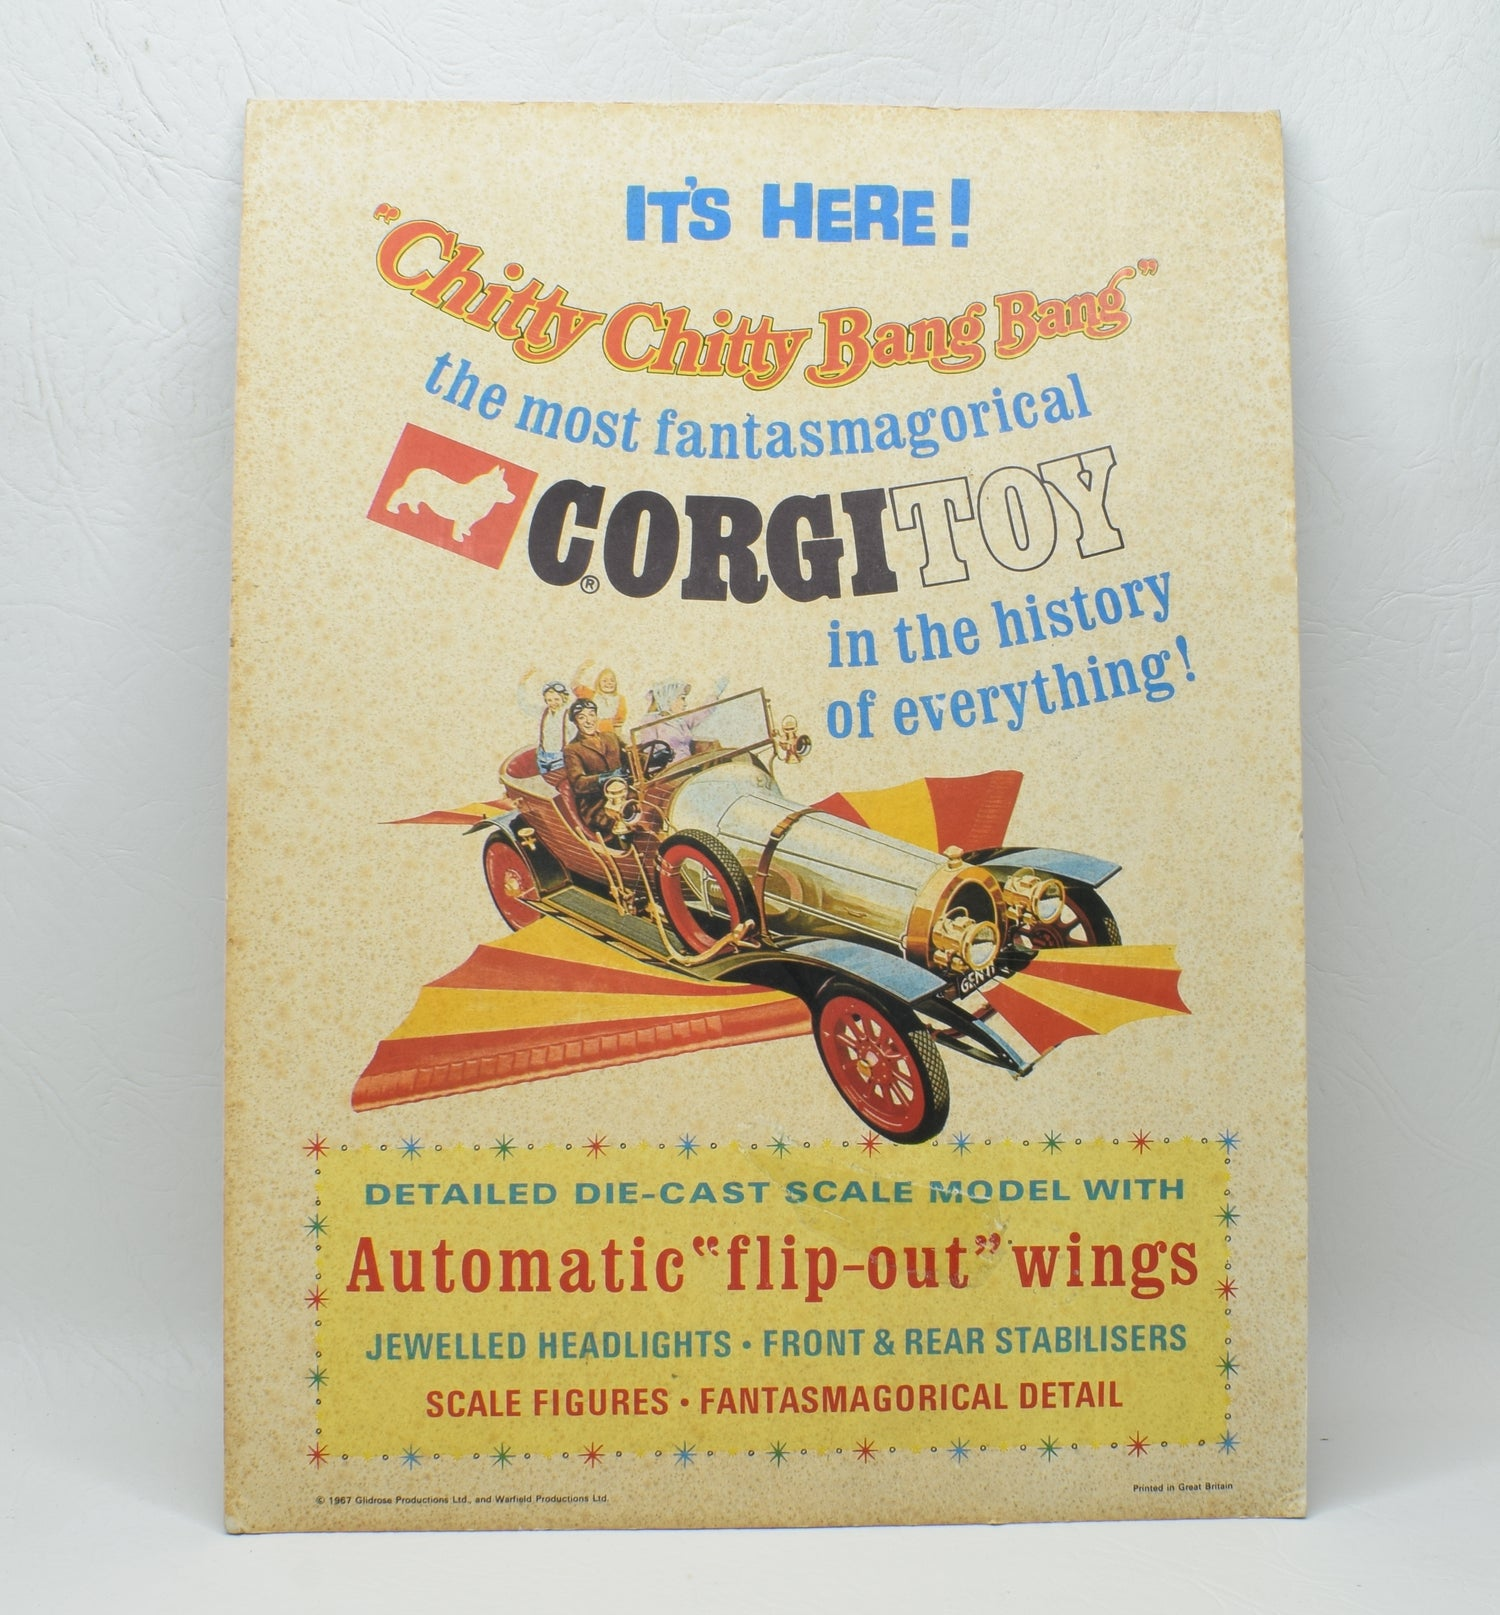 Corgi toys 266 Chitty Chitty Bang Bang Point of sale card display